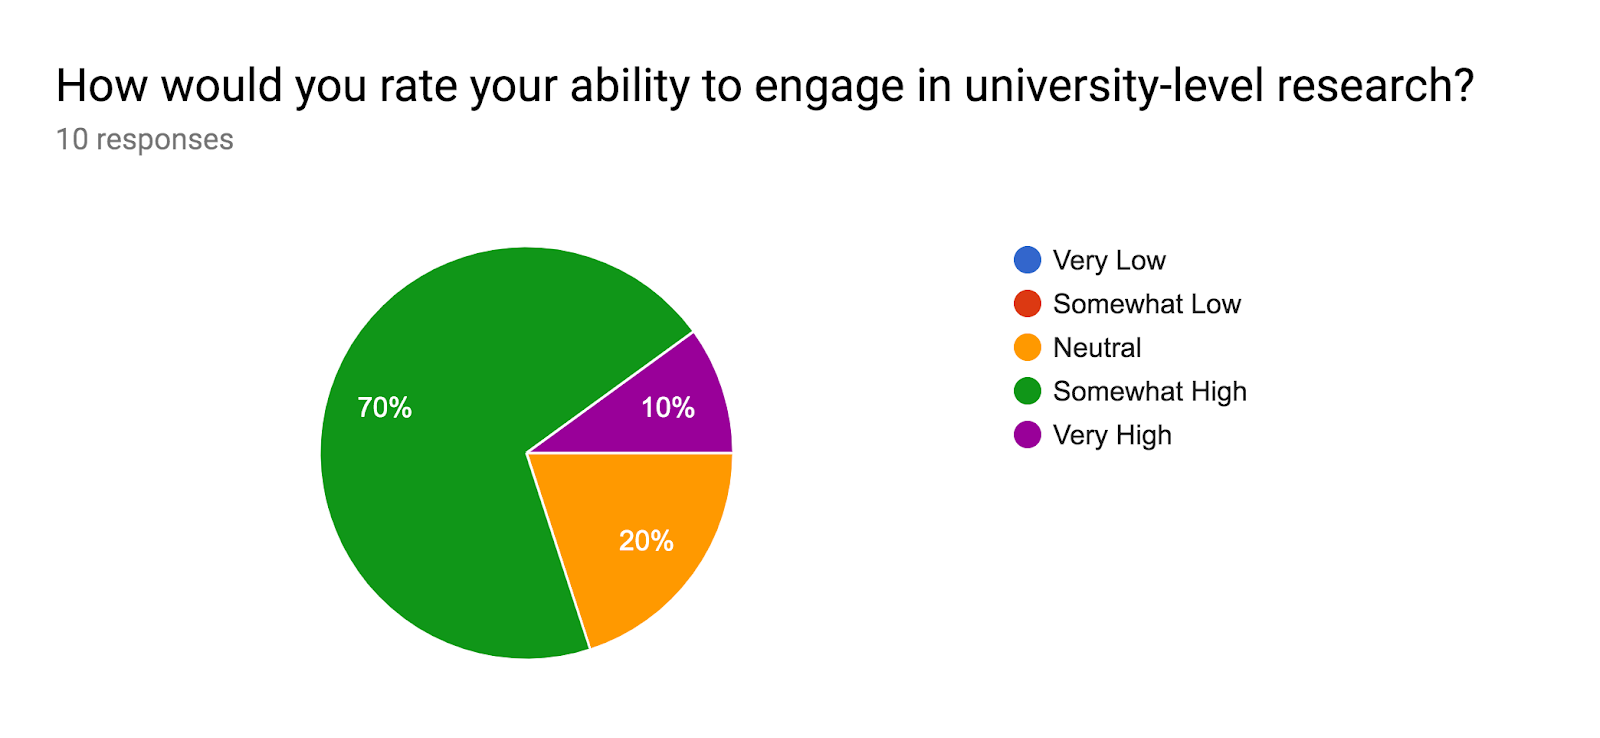 Forms response chart. Question title: How would you rate your ability to engage in university-level research?. Number of responses: 10 responses.